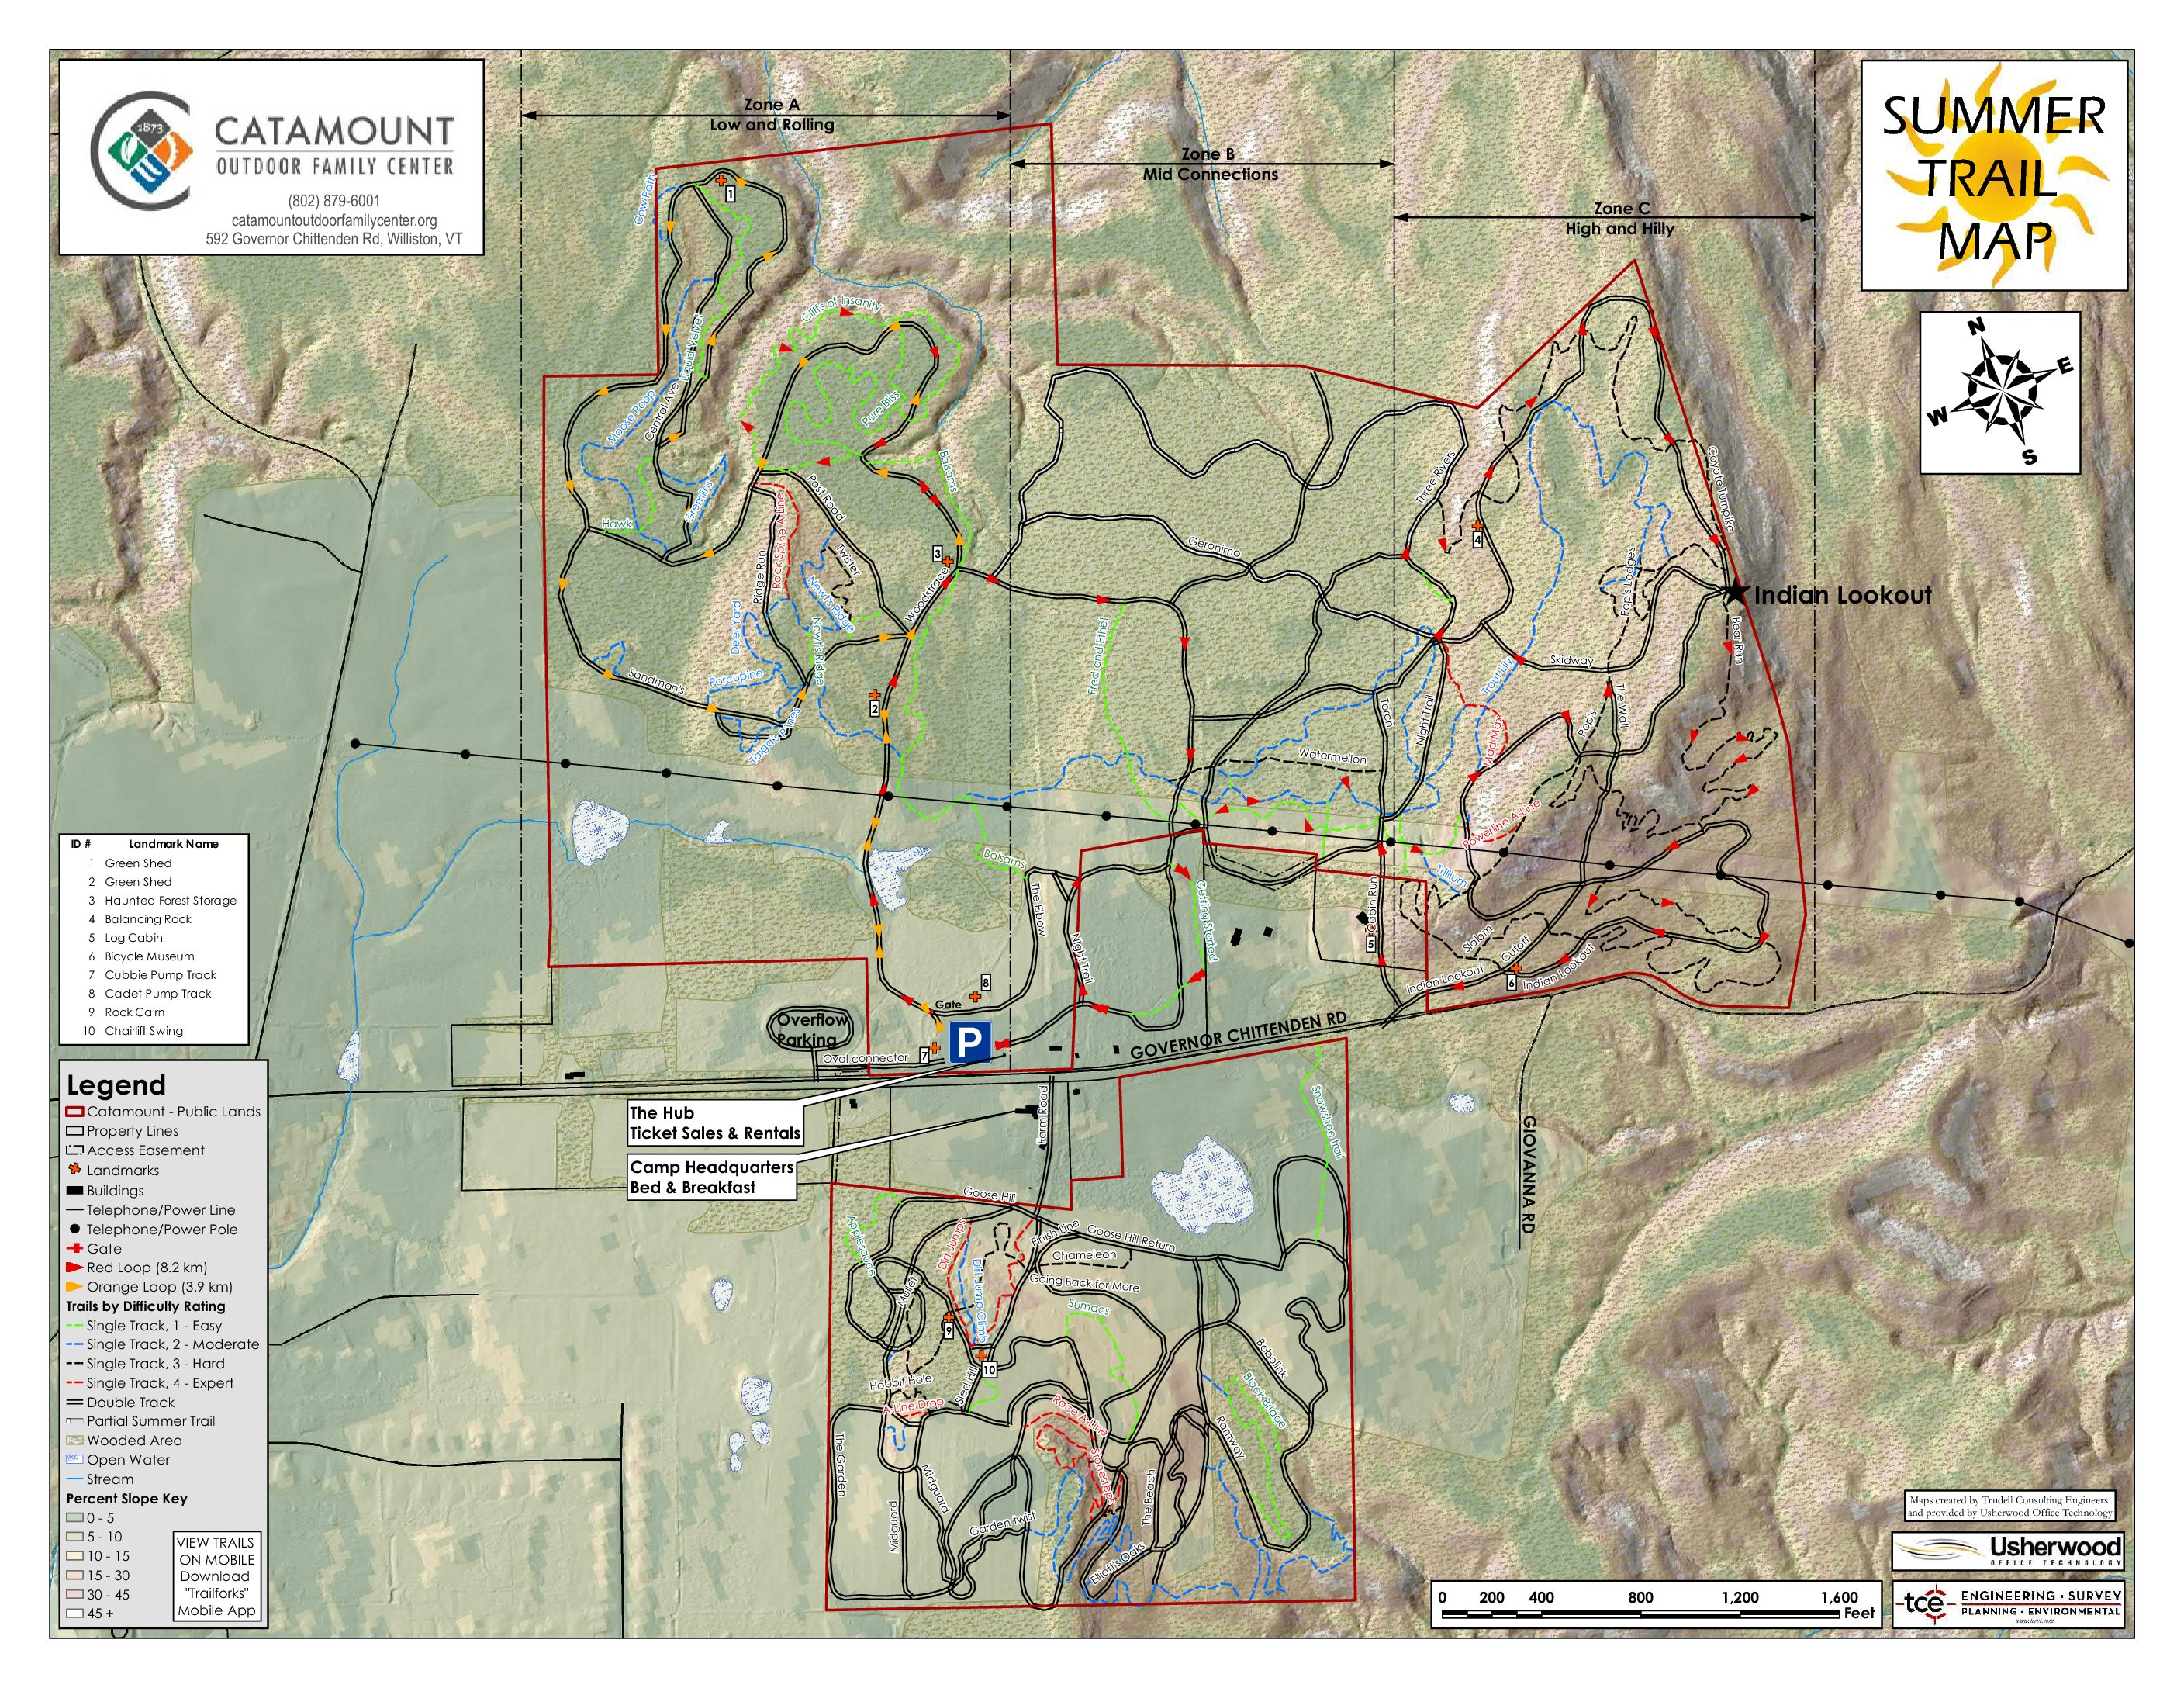 Mapping the Catamount Outdoor Family Center and Town Forest ... on